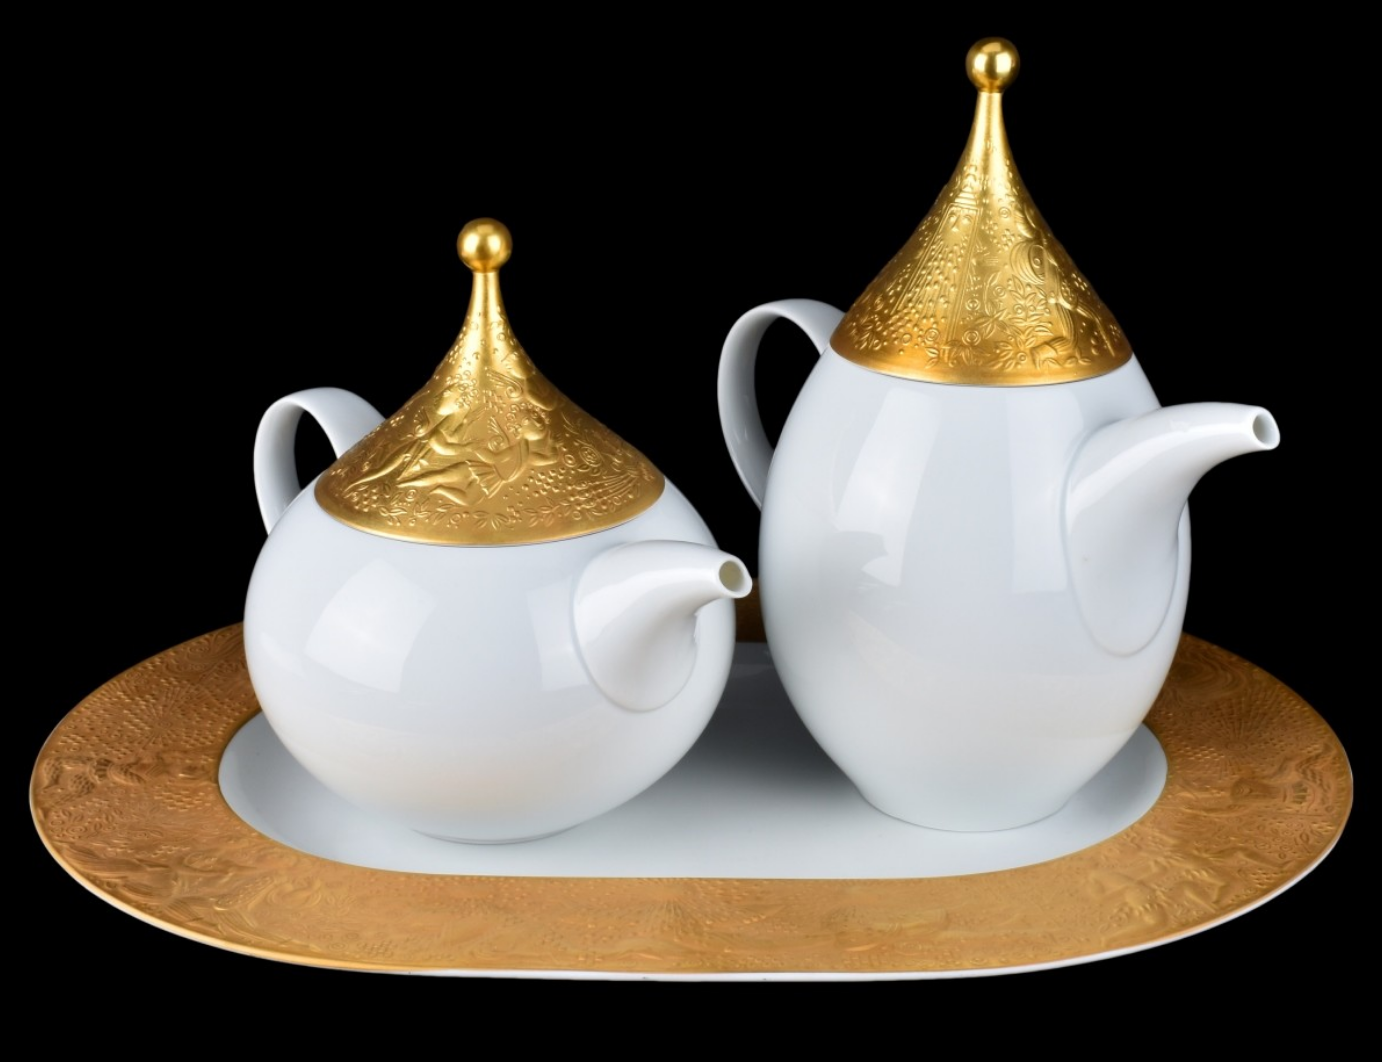 Primary image for Rosenthal  Magic Flute Sarastro Gold Set Coffee Pot Teapot Tray Tableware NEW